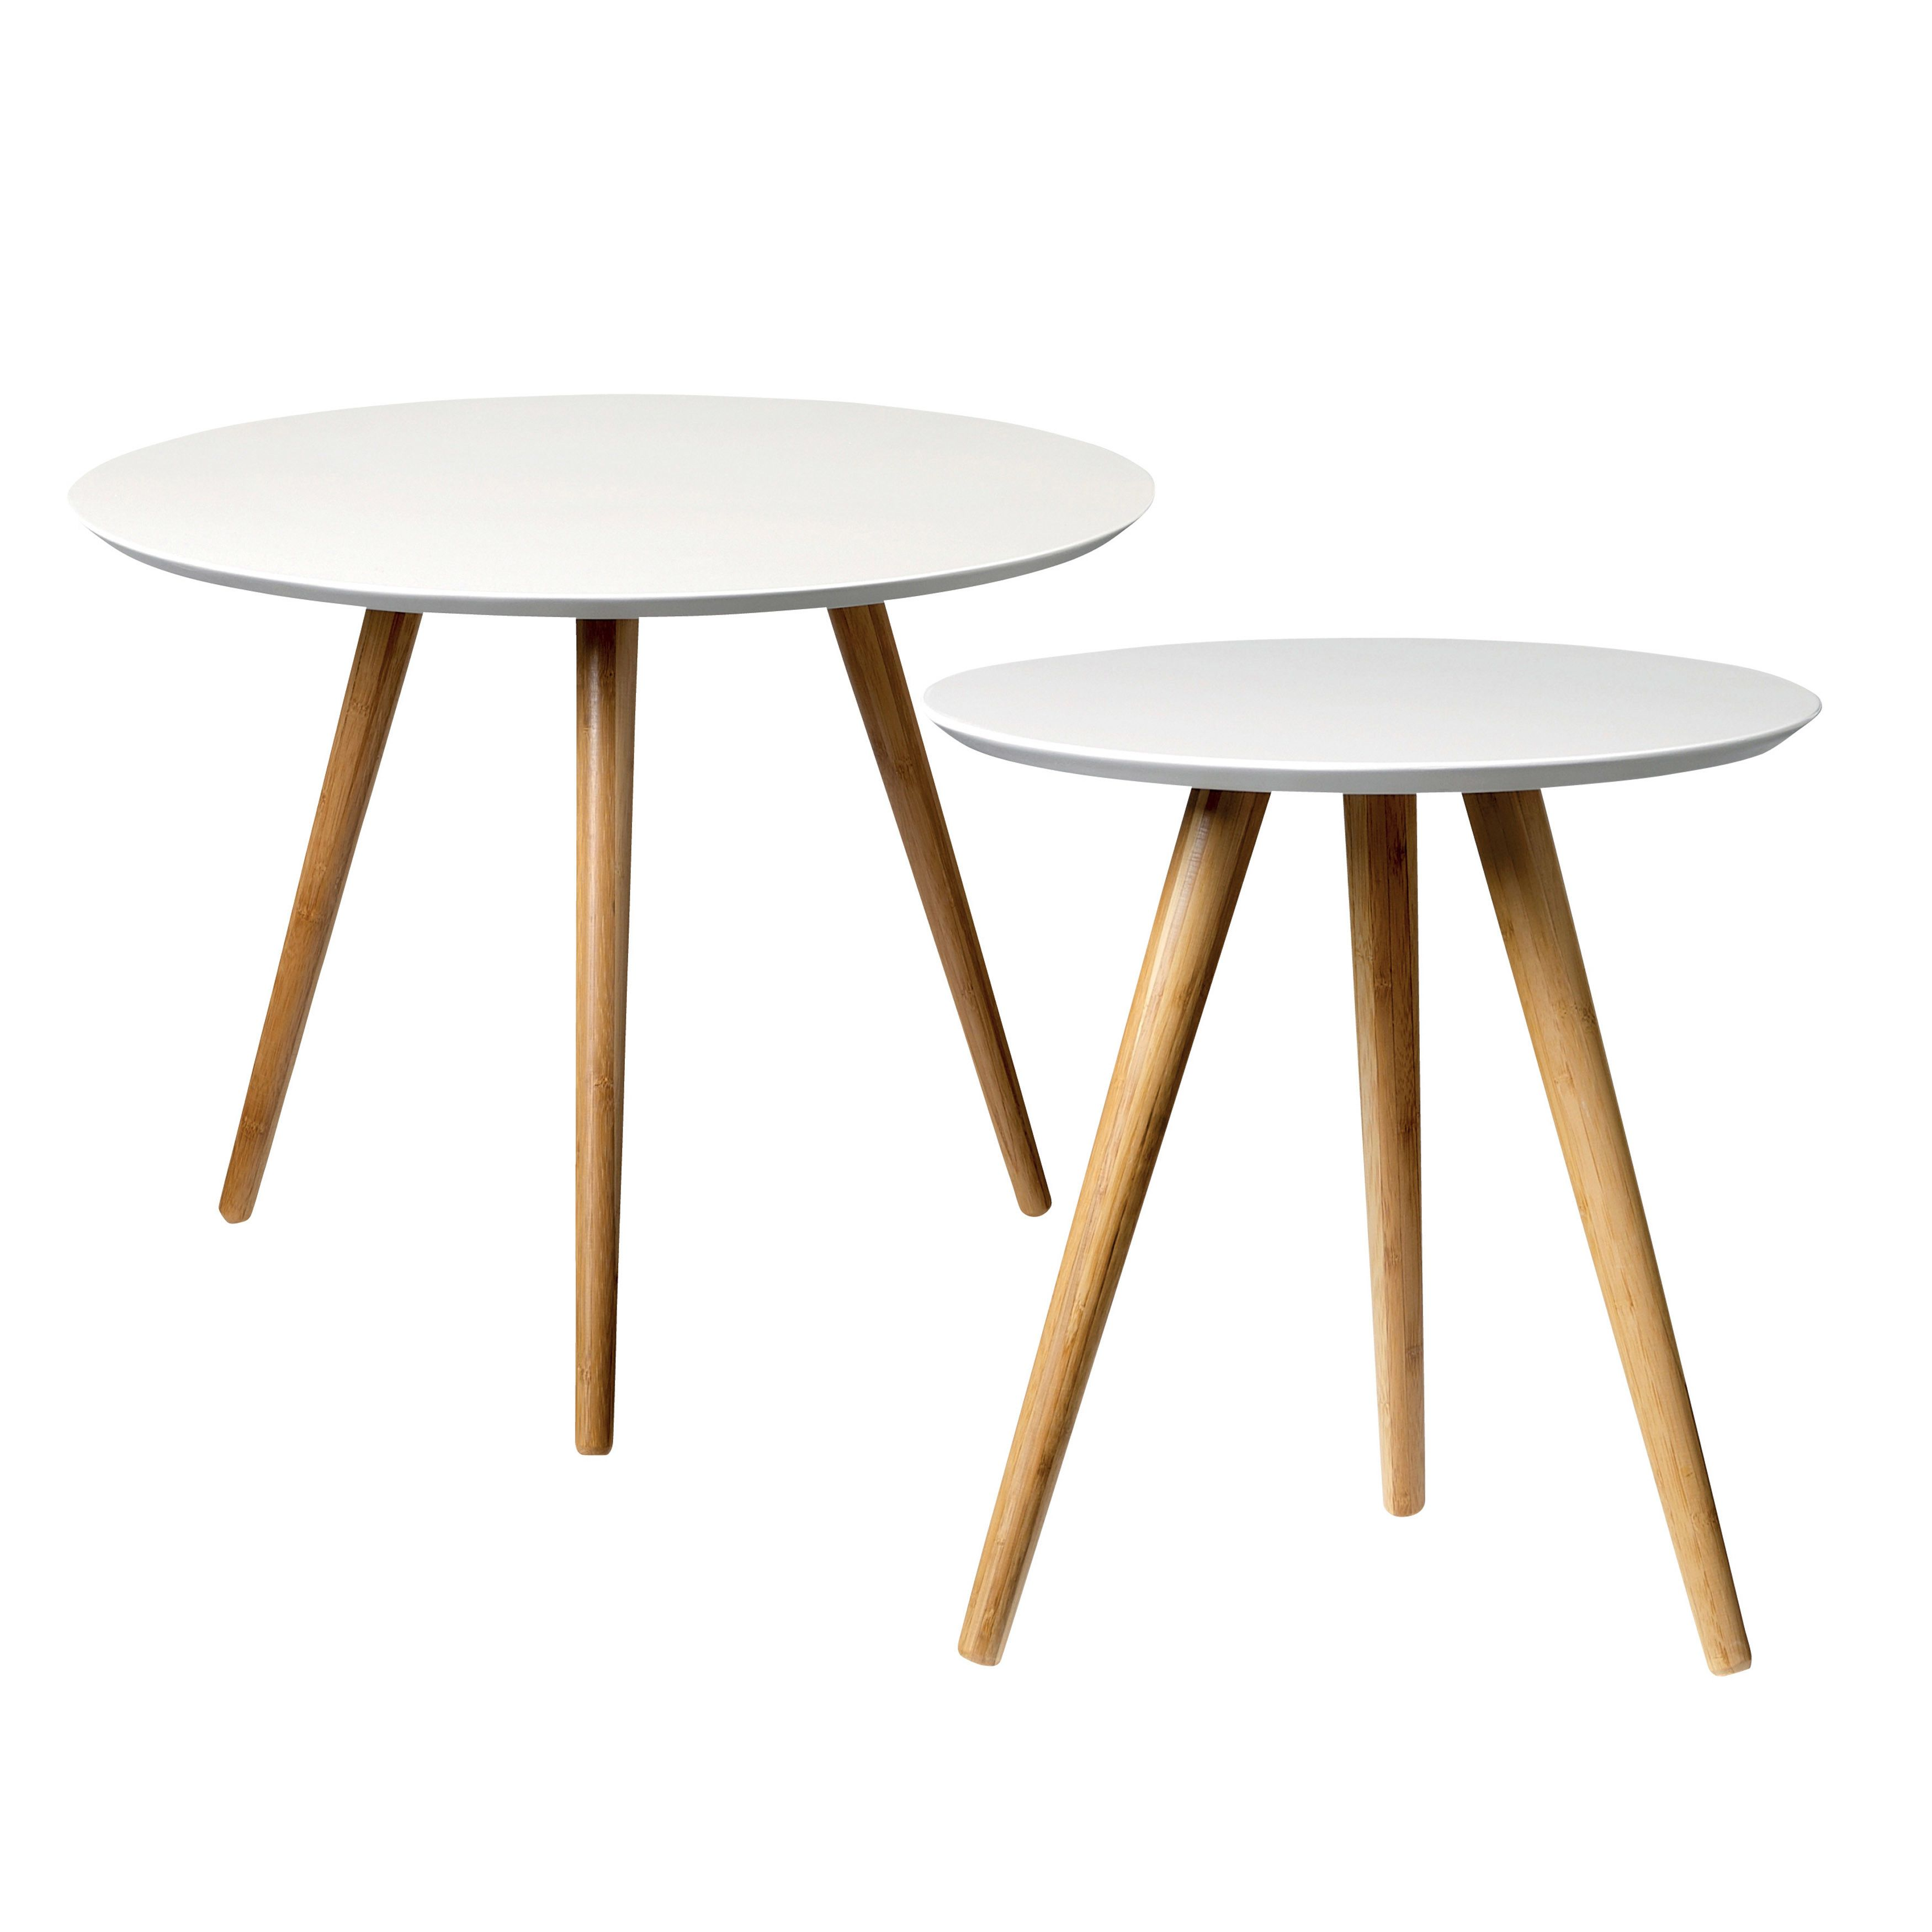 Bloomingville 2 Piece End Table Set Bamboo Coffee Table Coffee Table White Round Coffee Table [ 3500 x 3500 Pixel ]